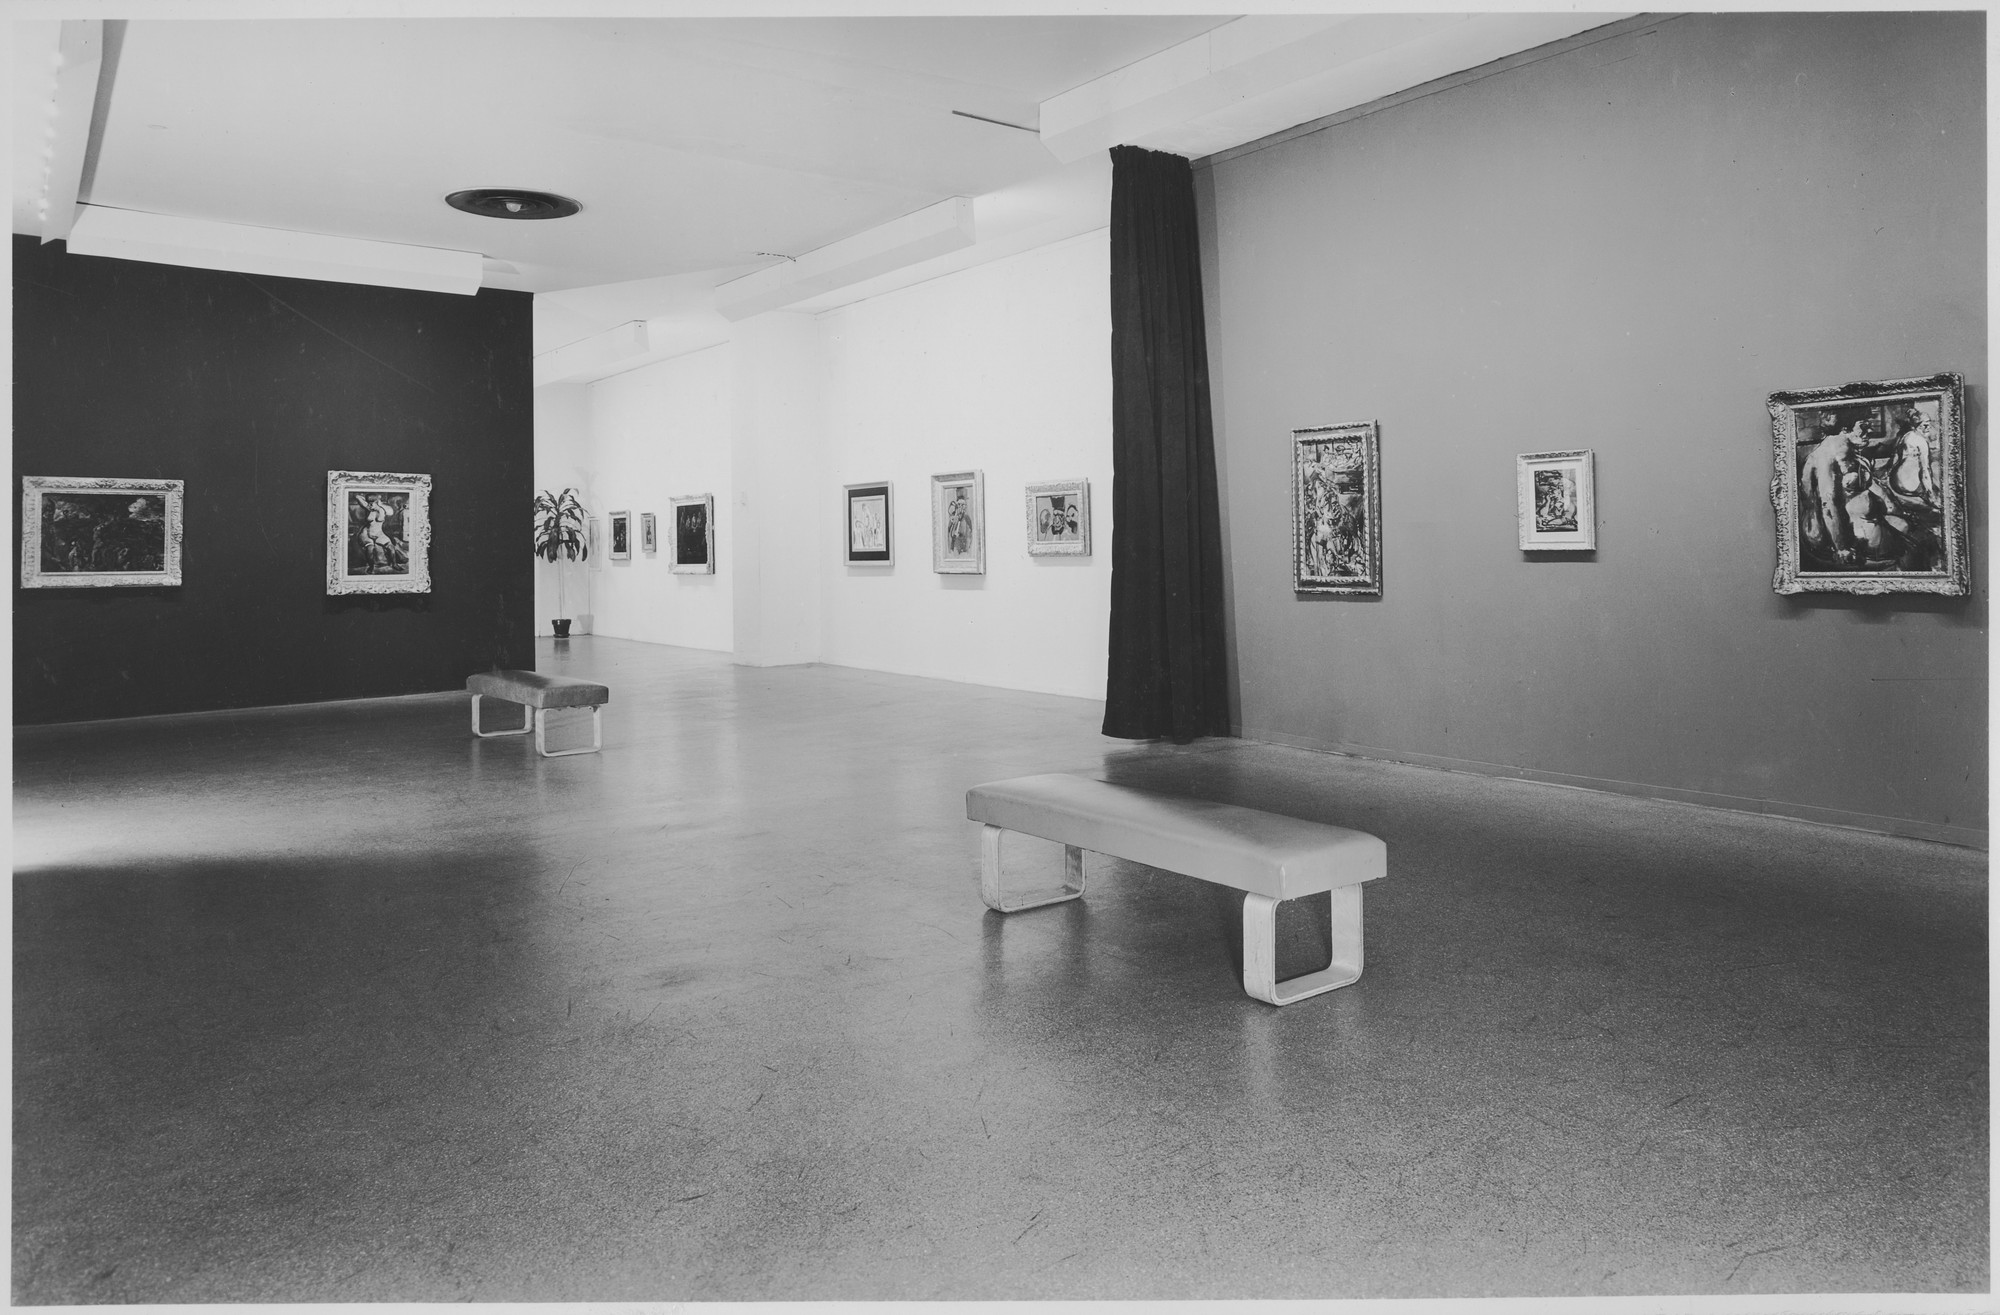 "Installation view of the exhibition, ""Georges Rouault."" April 4, 1945–June 3, 1945. Photographic Archive. The Museum of Modern Art Archives, New York. IN284.1. Photograph by Soichi Sunami."